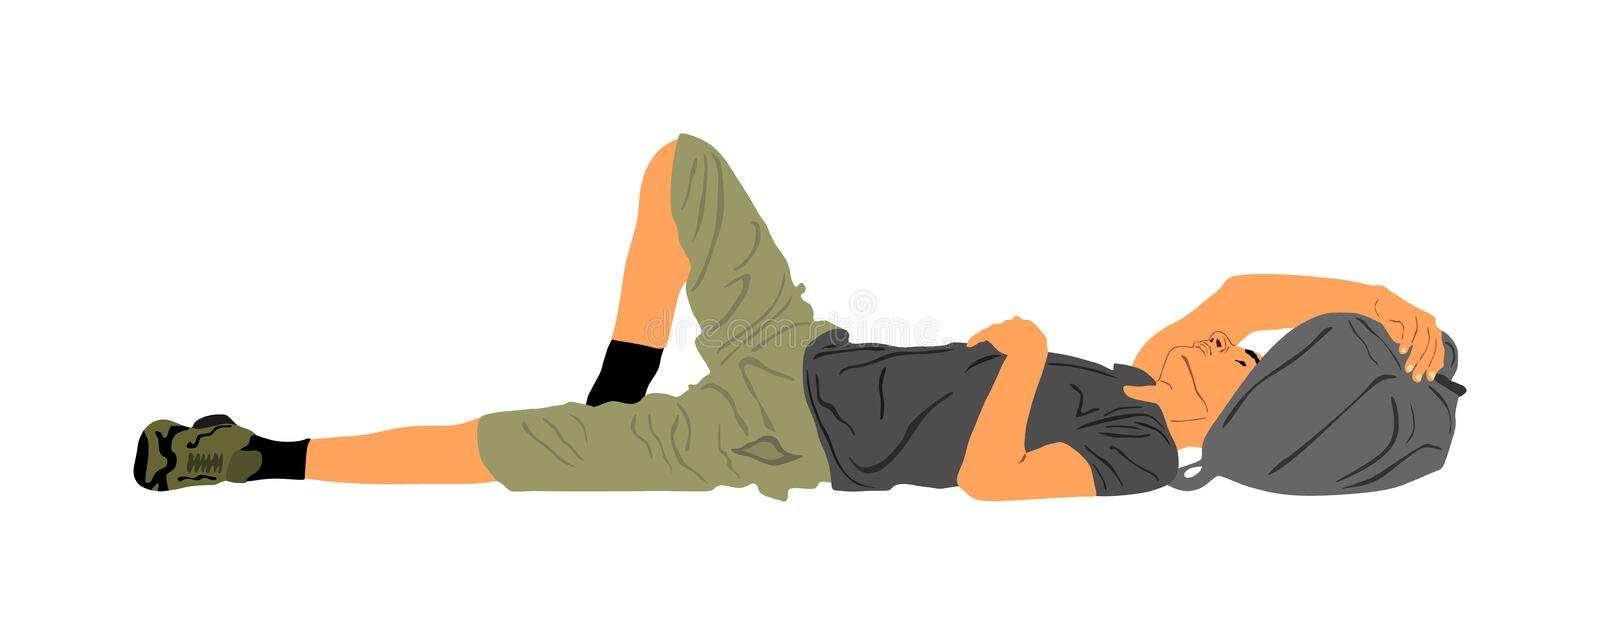 Homeless man sleeping on the street on the ground, vector illustration. Migrant from Middle East resting on the ground. Border. royalty free illustration